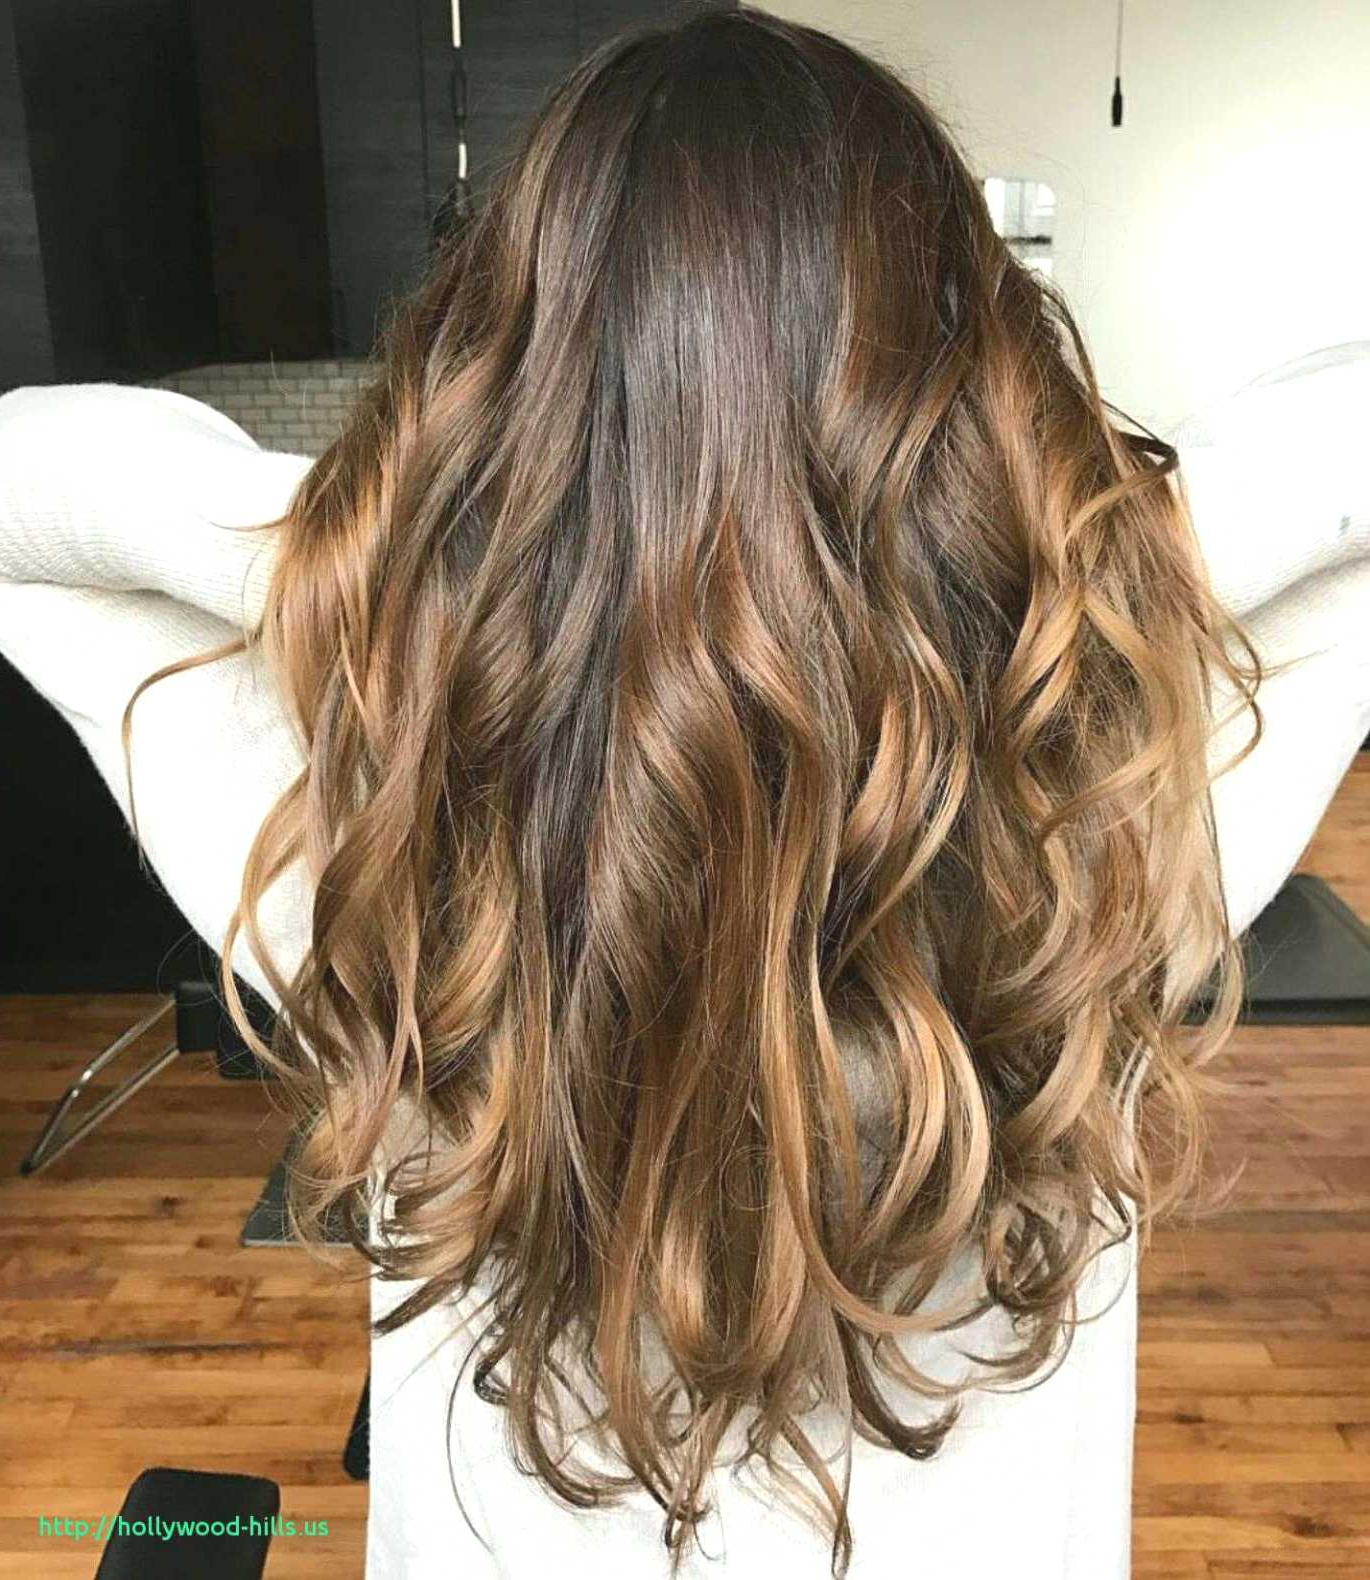 Amazing V Shaped Layered Haircut Pictures  Alwaysdc For V Shaped Layered Short Haircuts (Gallery 17 of 25)